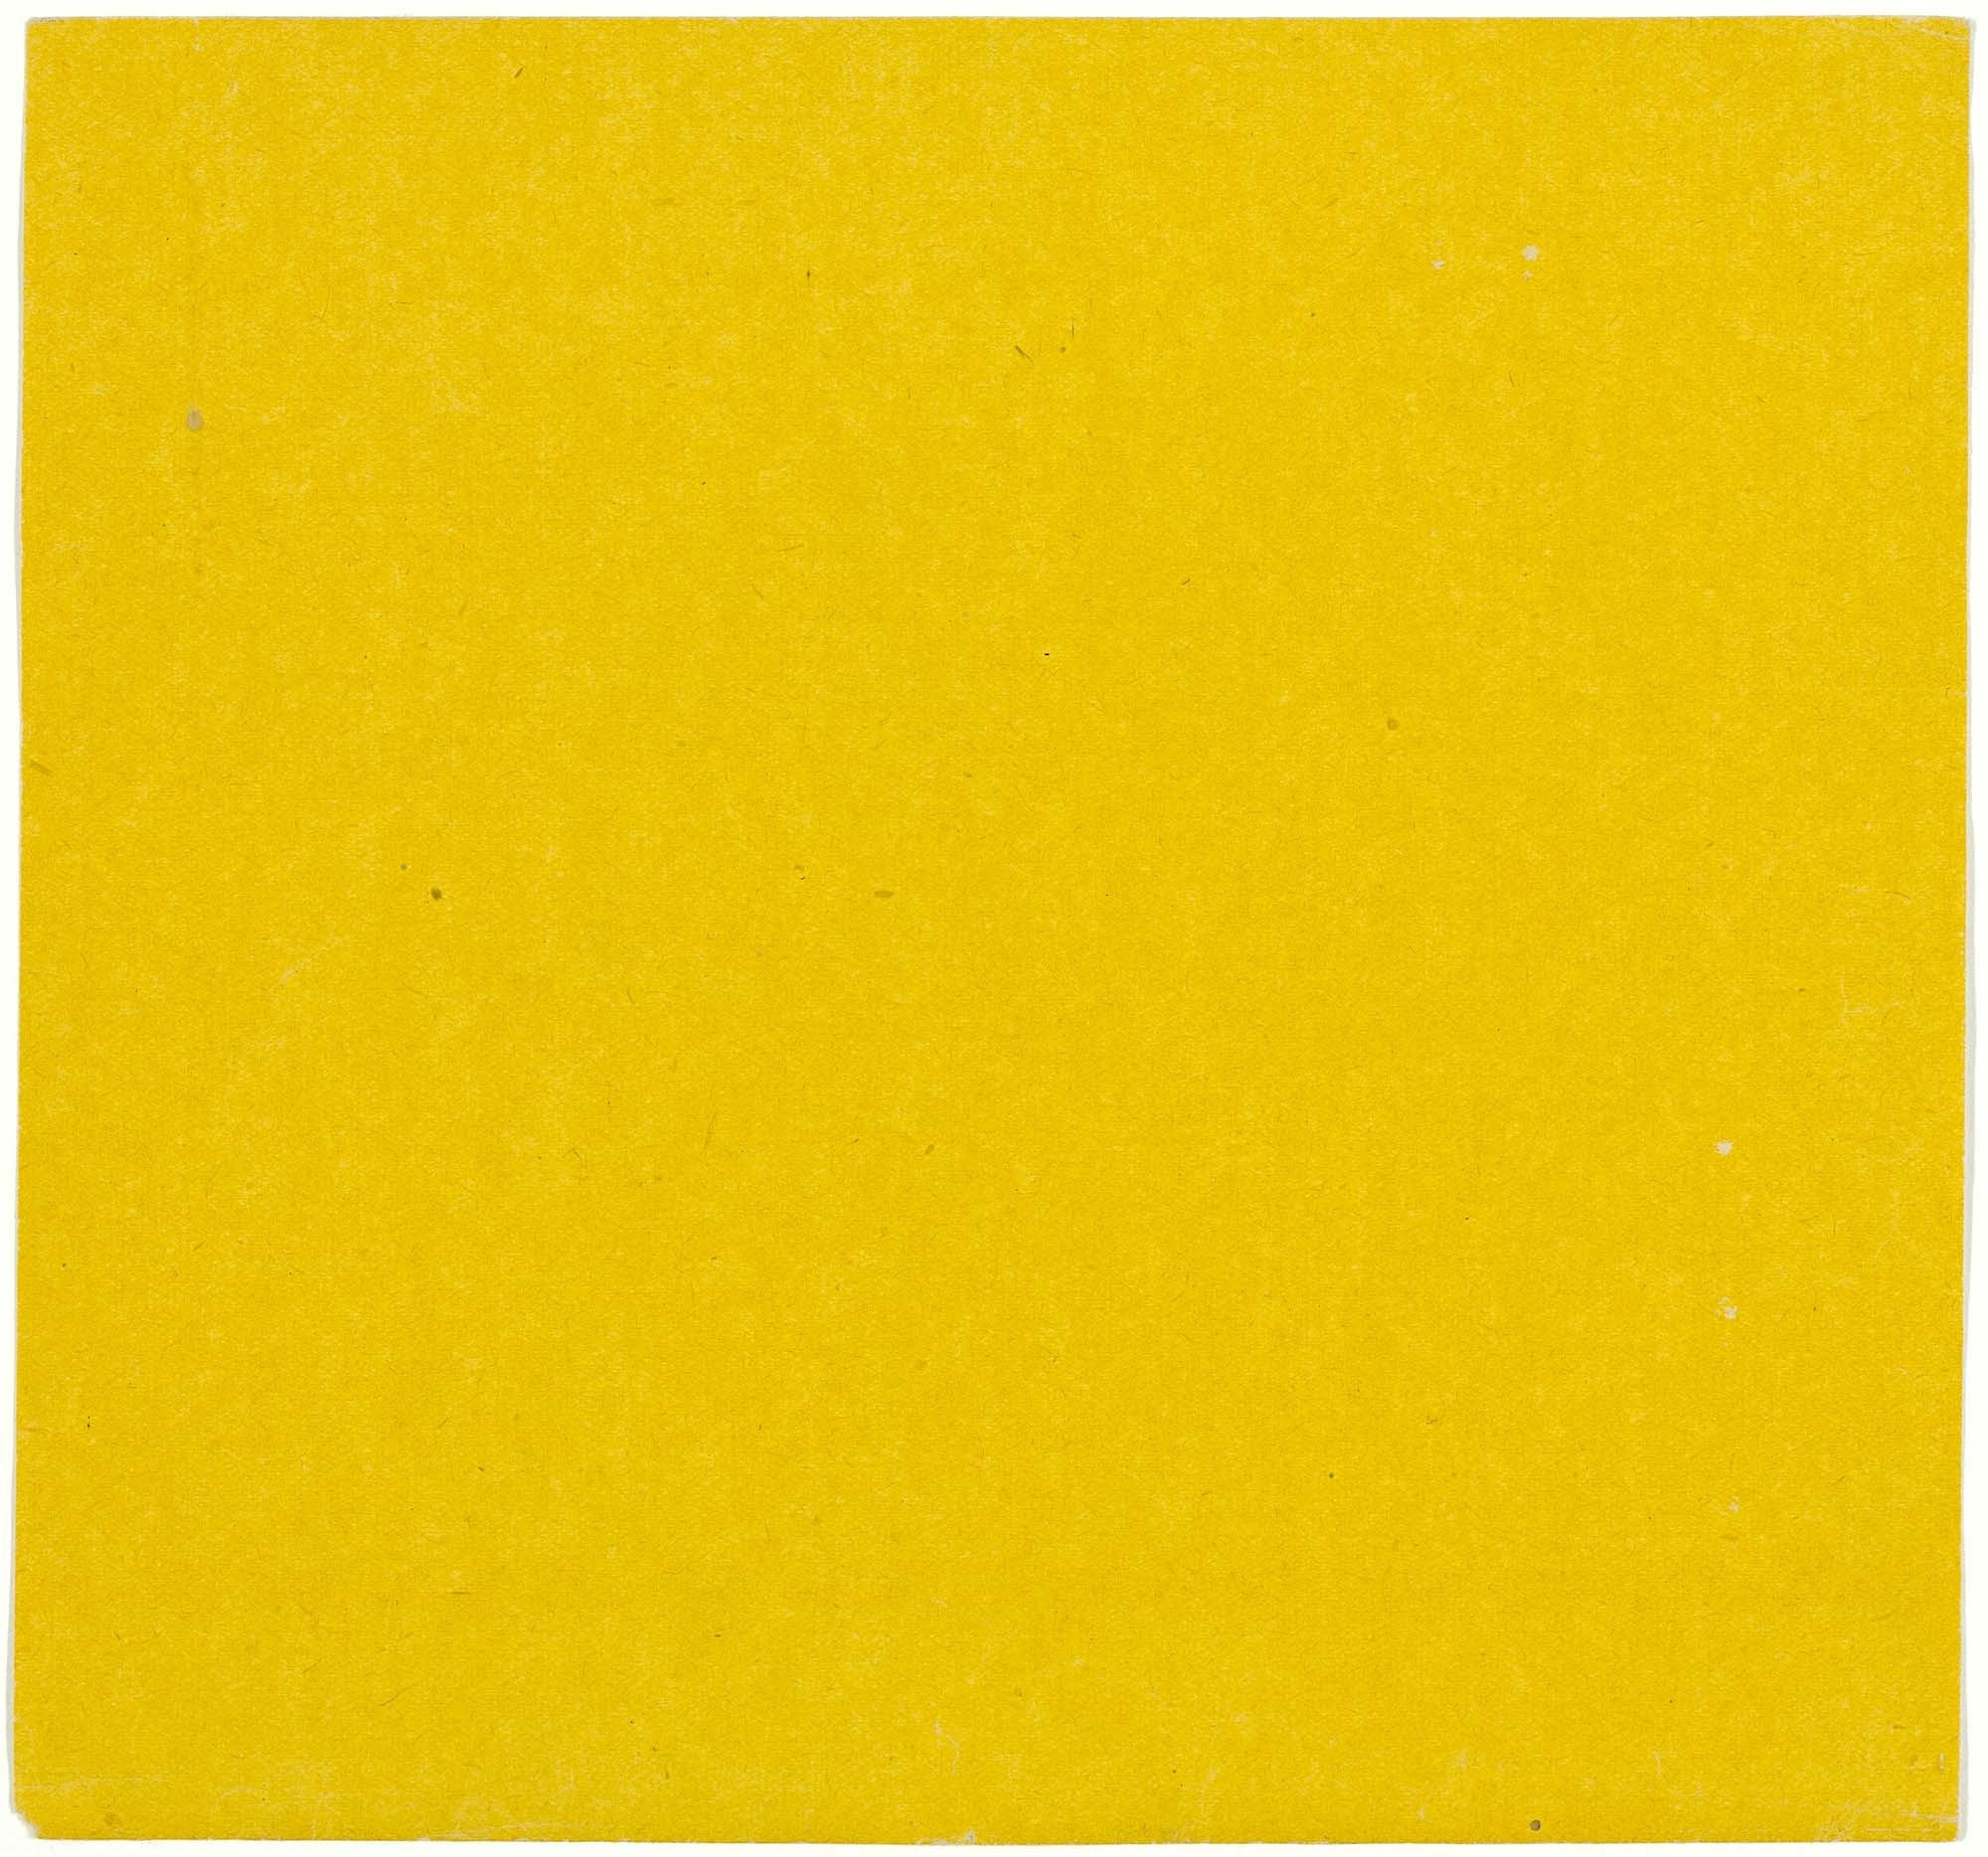 Ellsworth Kelly. Yellow from the series Line Form Color. 1951. Colored Paper. 7 1/2 × 8″ (19 × 20.3 cm). Gift of the artist and purchased with funds provided by Jo Carole and Ronald S. Lauder, Sarah-Ann and Werner H. Kramarsky, Mr. and Mrs. James R. Hedges, IV, Kathy and Richard S. Fuld, Jr. and Committee on Drawings Funds. © 2008 Ellsworth Kelly